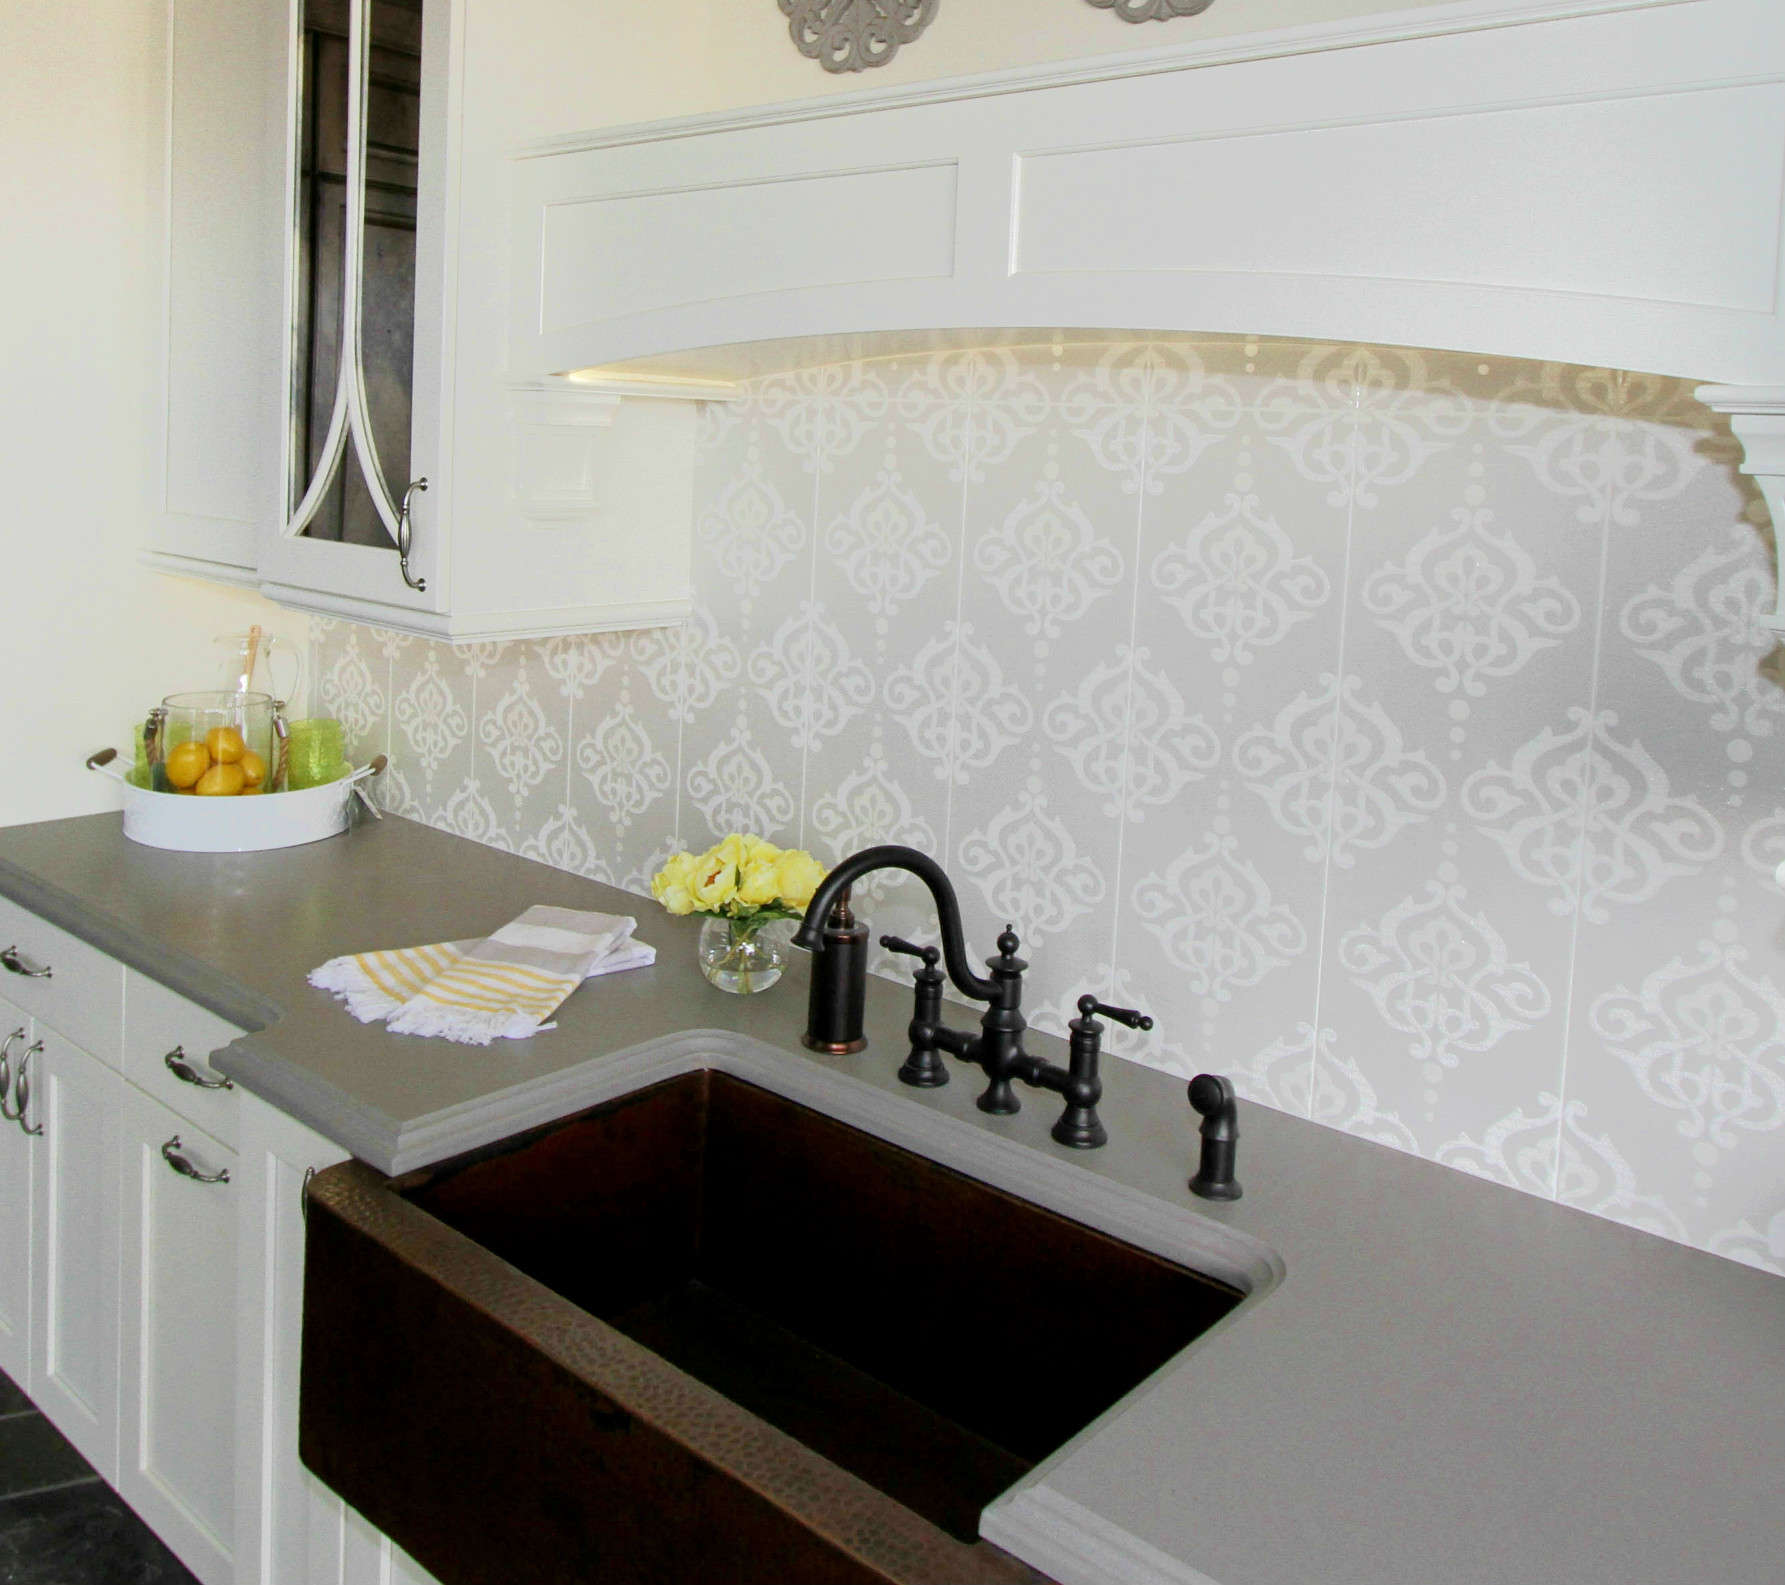 The New Age of Tile - Texture! - KBF Design Gallery